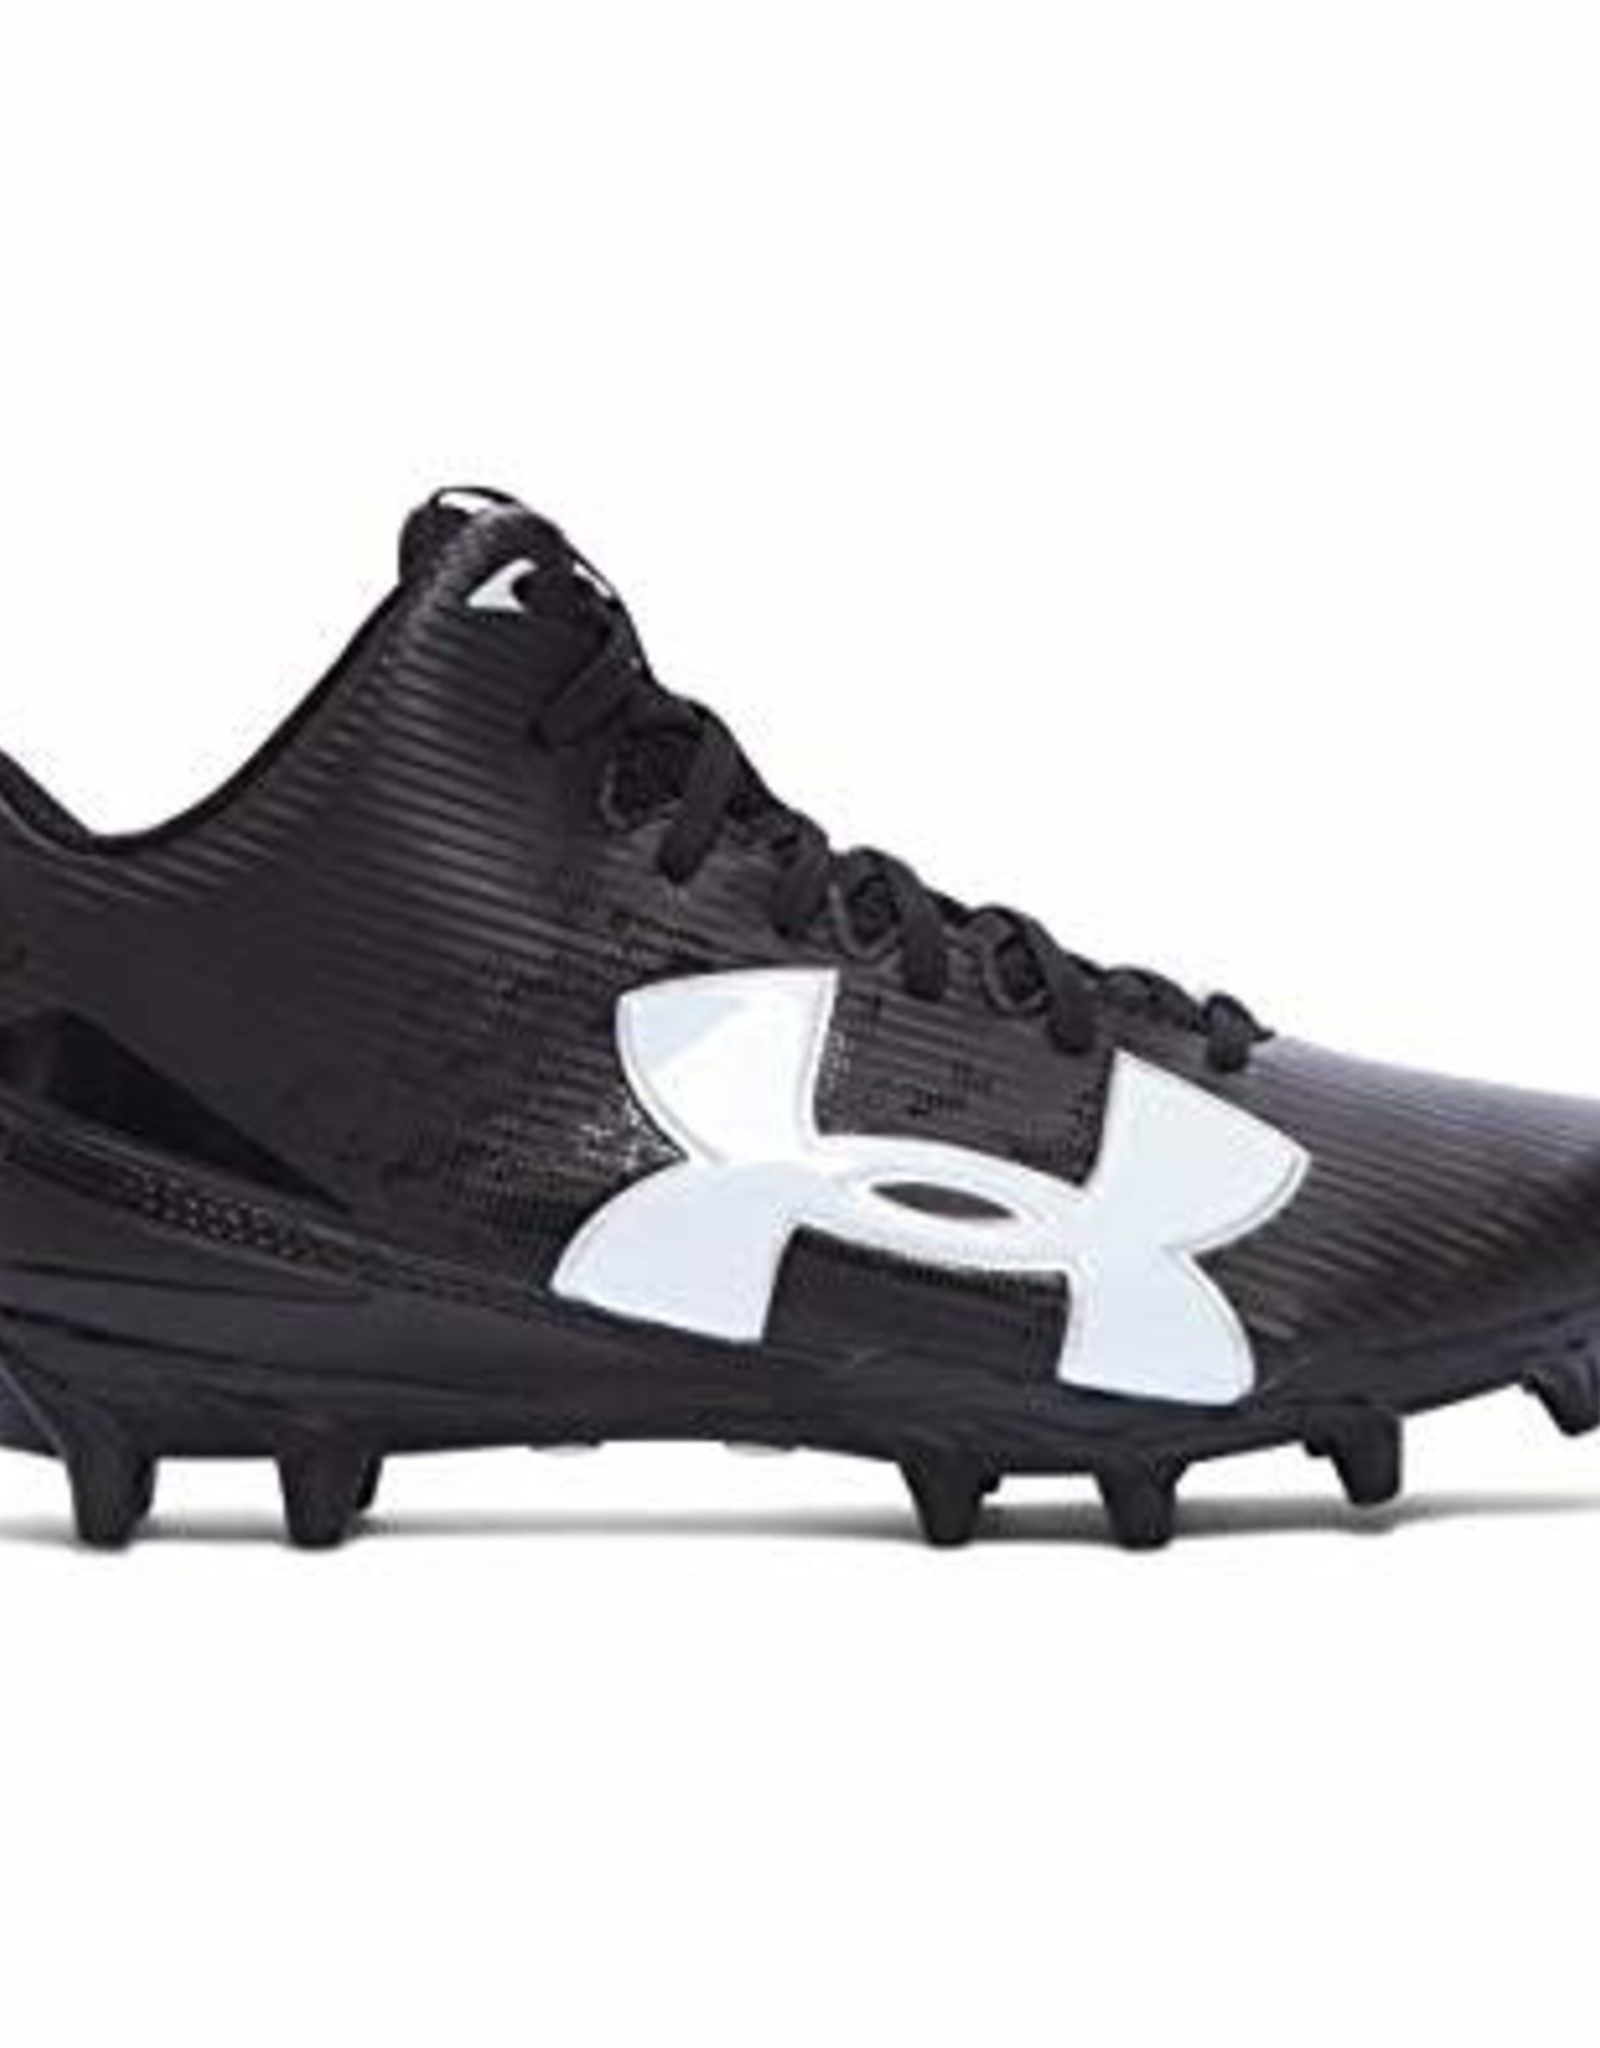 Under Armour UA Fierce Phantom MC(8.5) Black/White